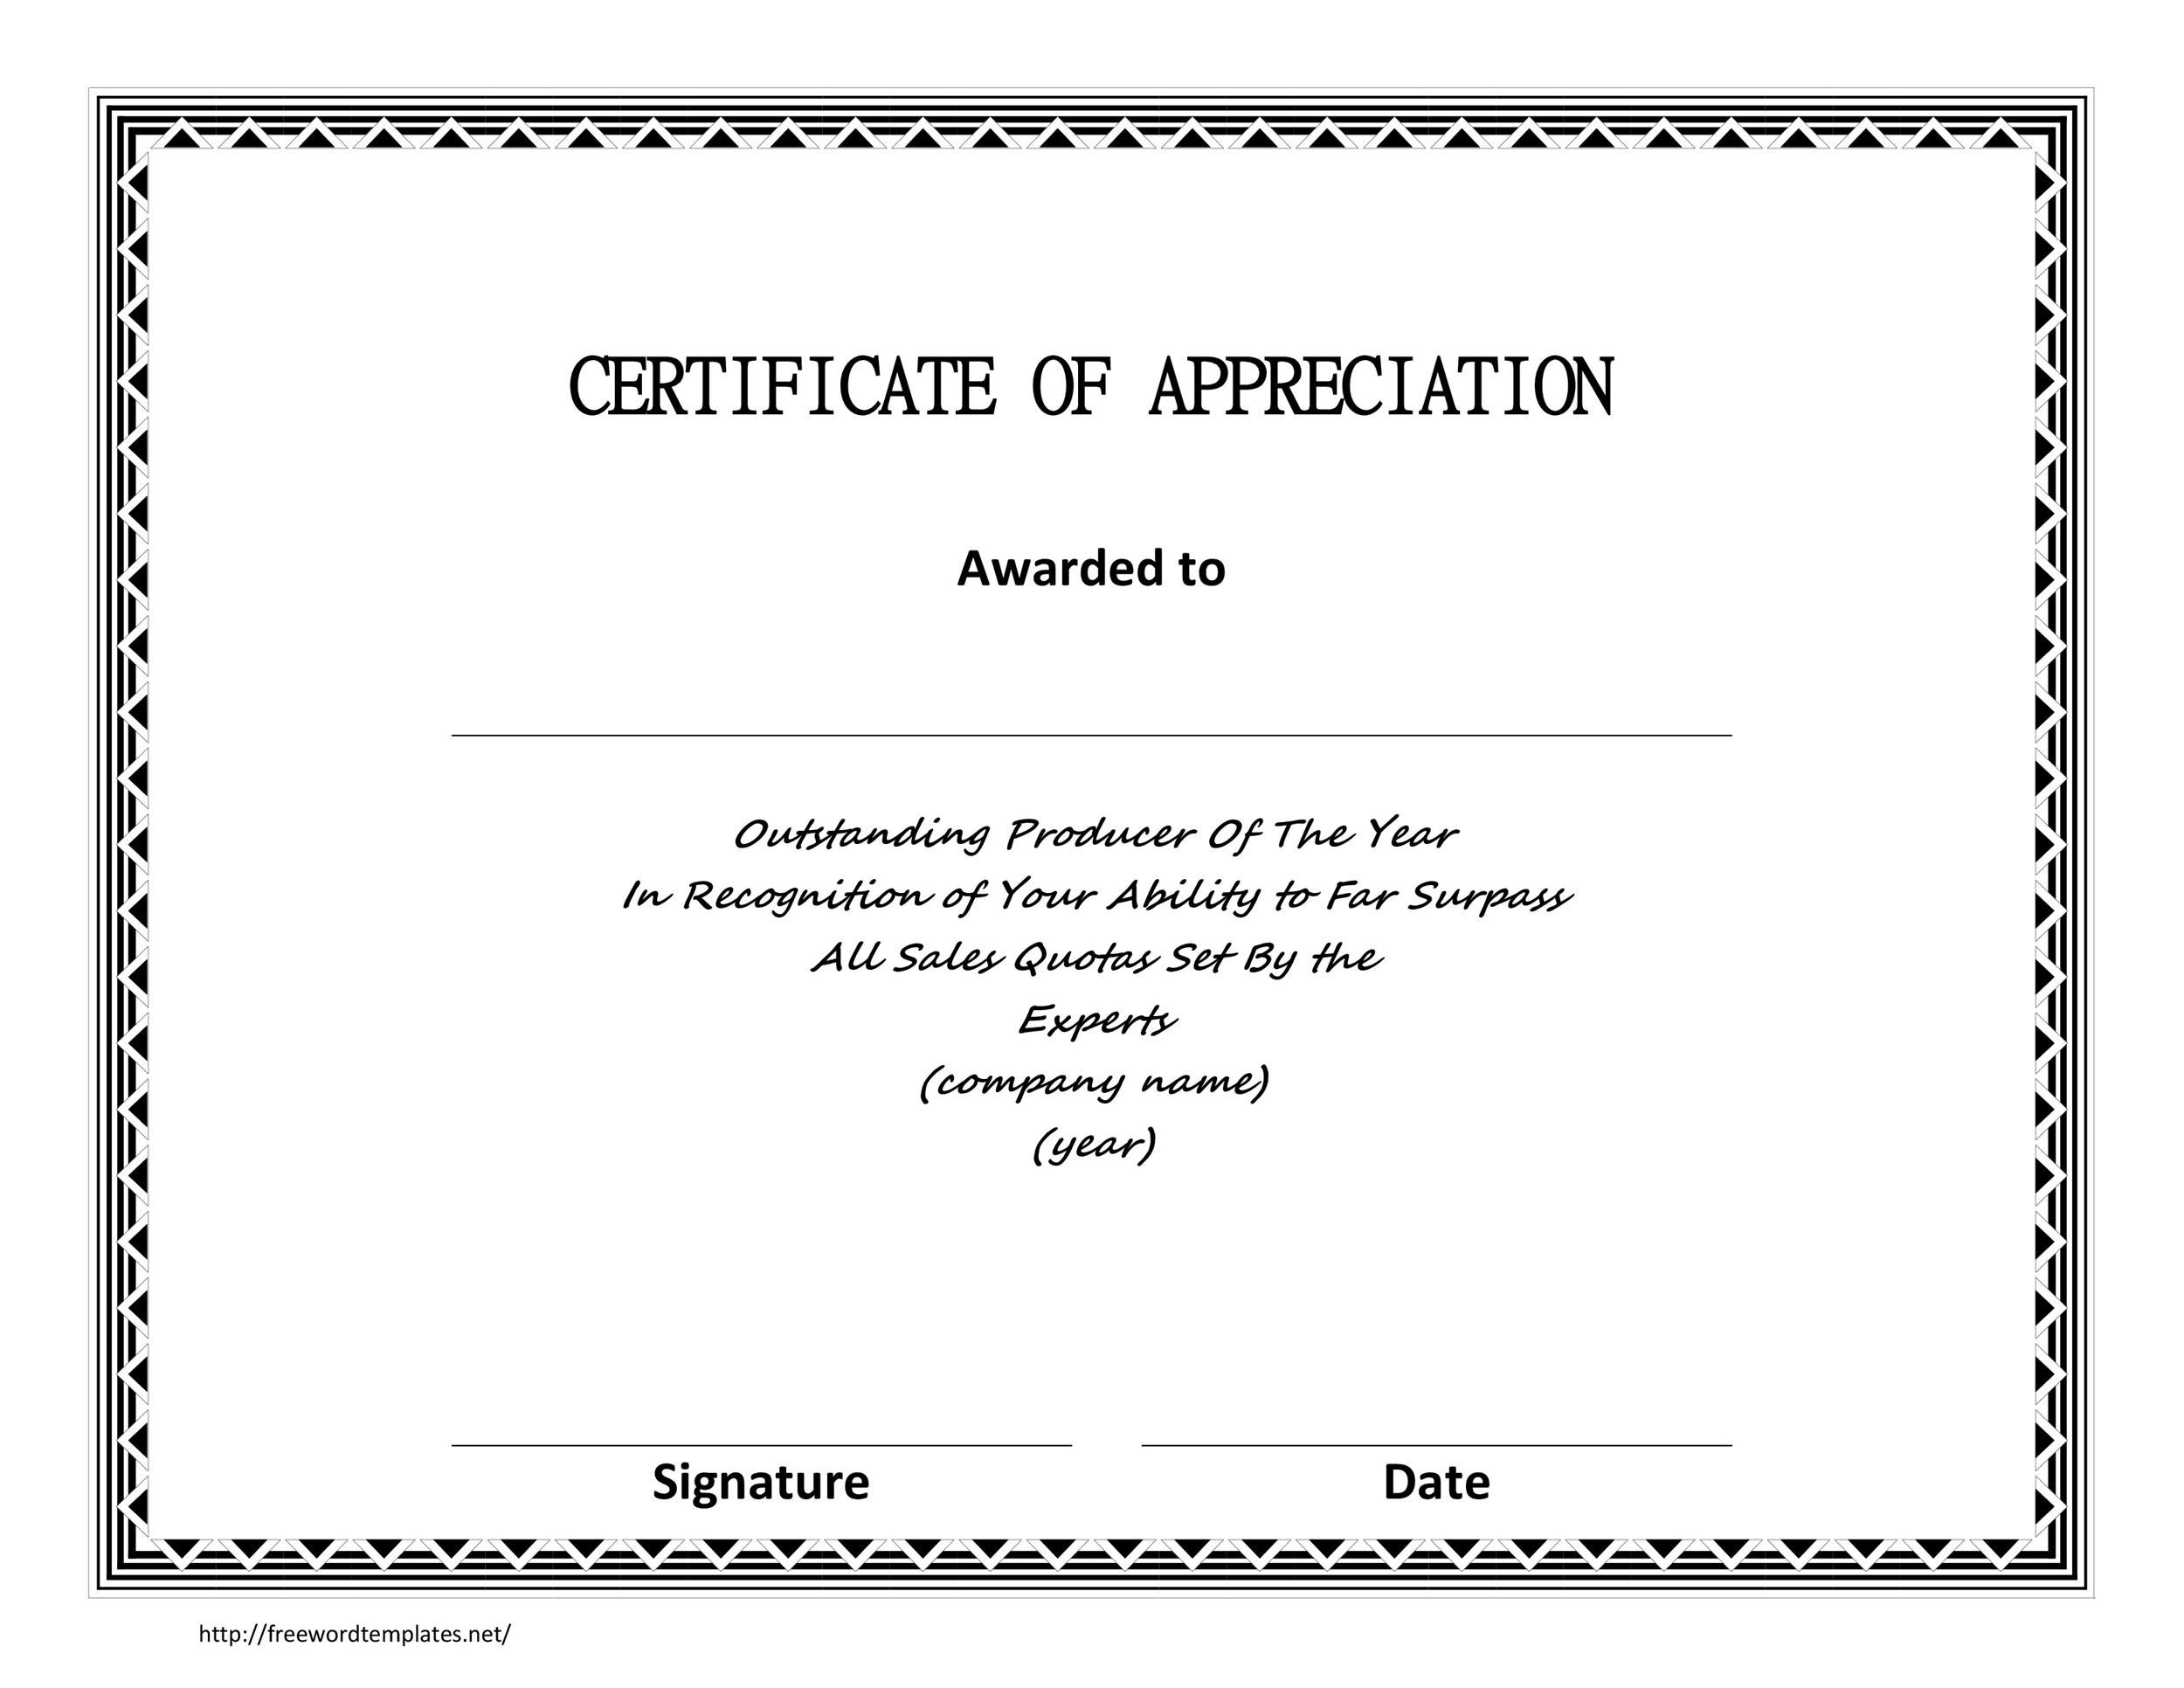 30 free certificate of appreciation templates and letters printable certificate of appreciation 06 yelopaper